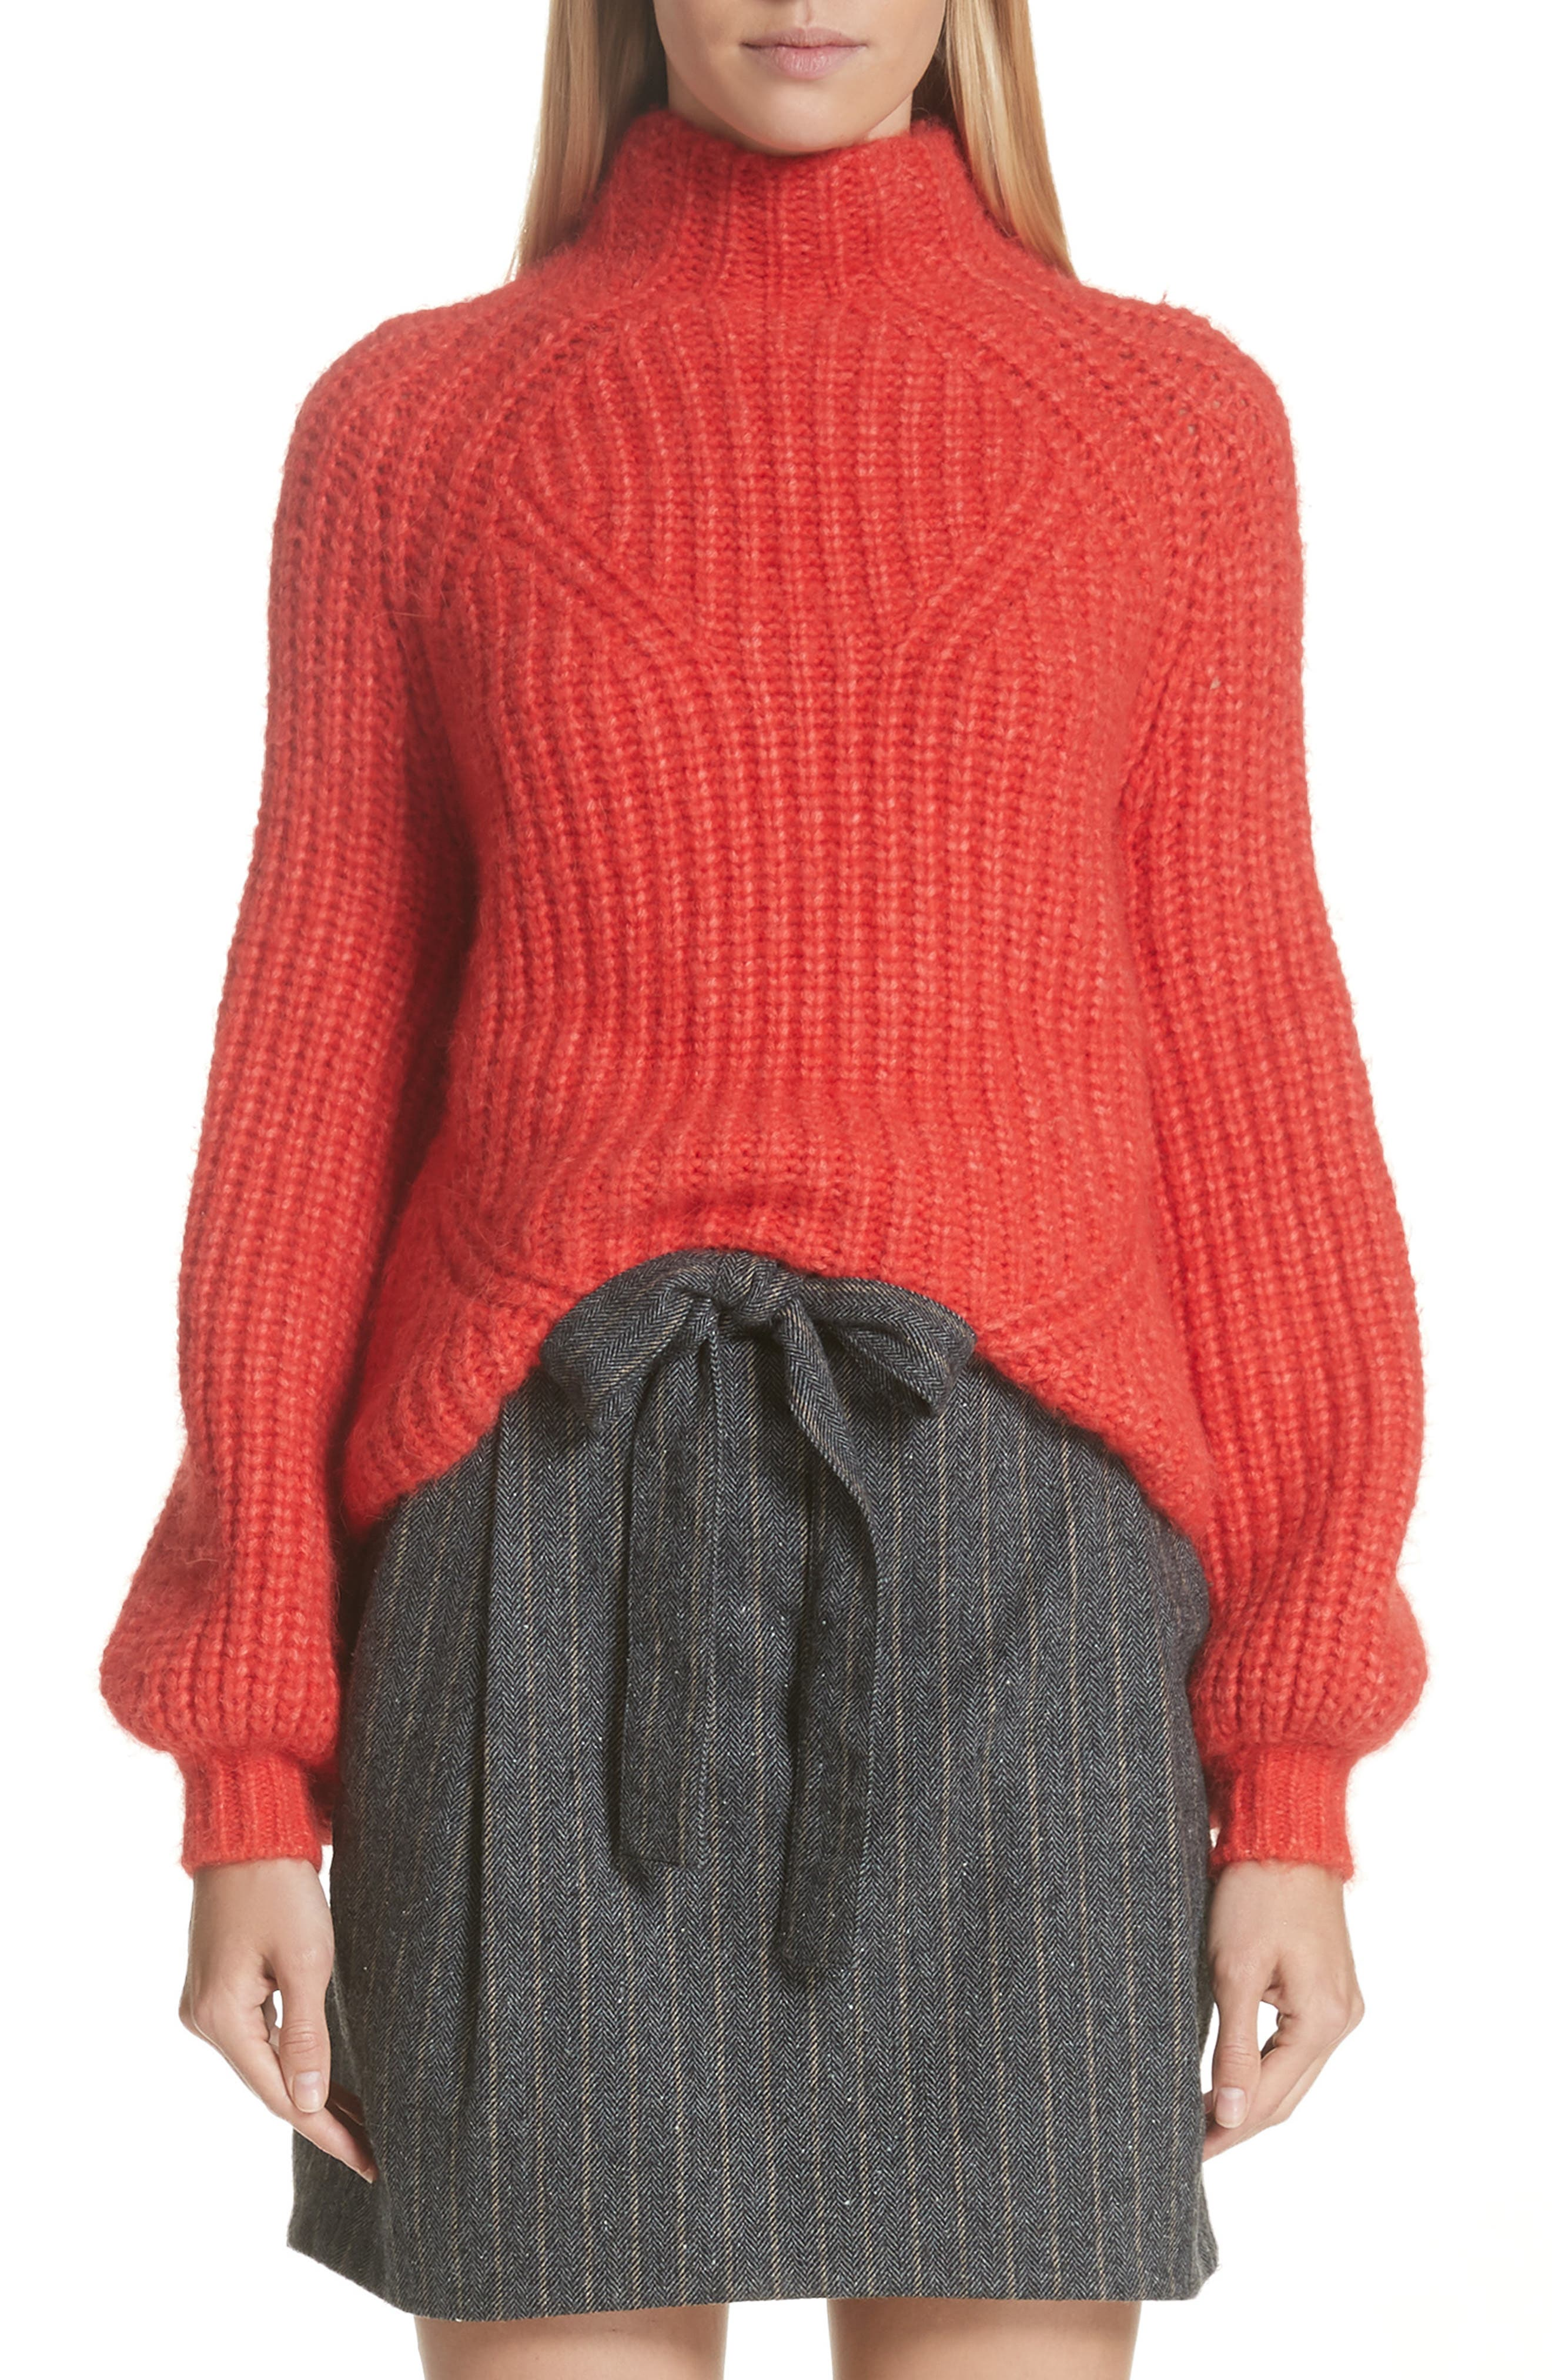 Micha Rib-Knit Alpaca-Blend Sweater - Red Size S in Crimson